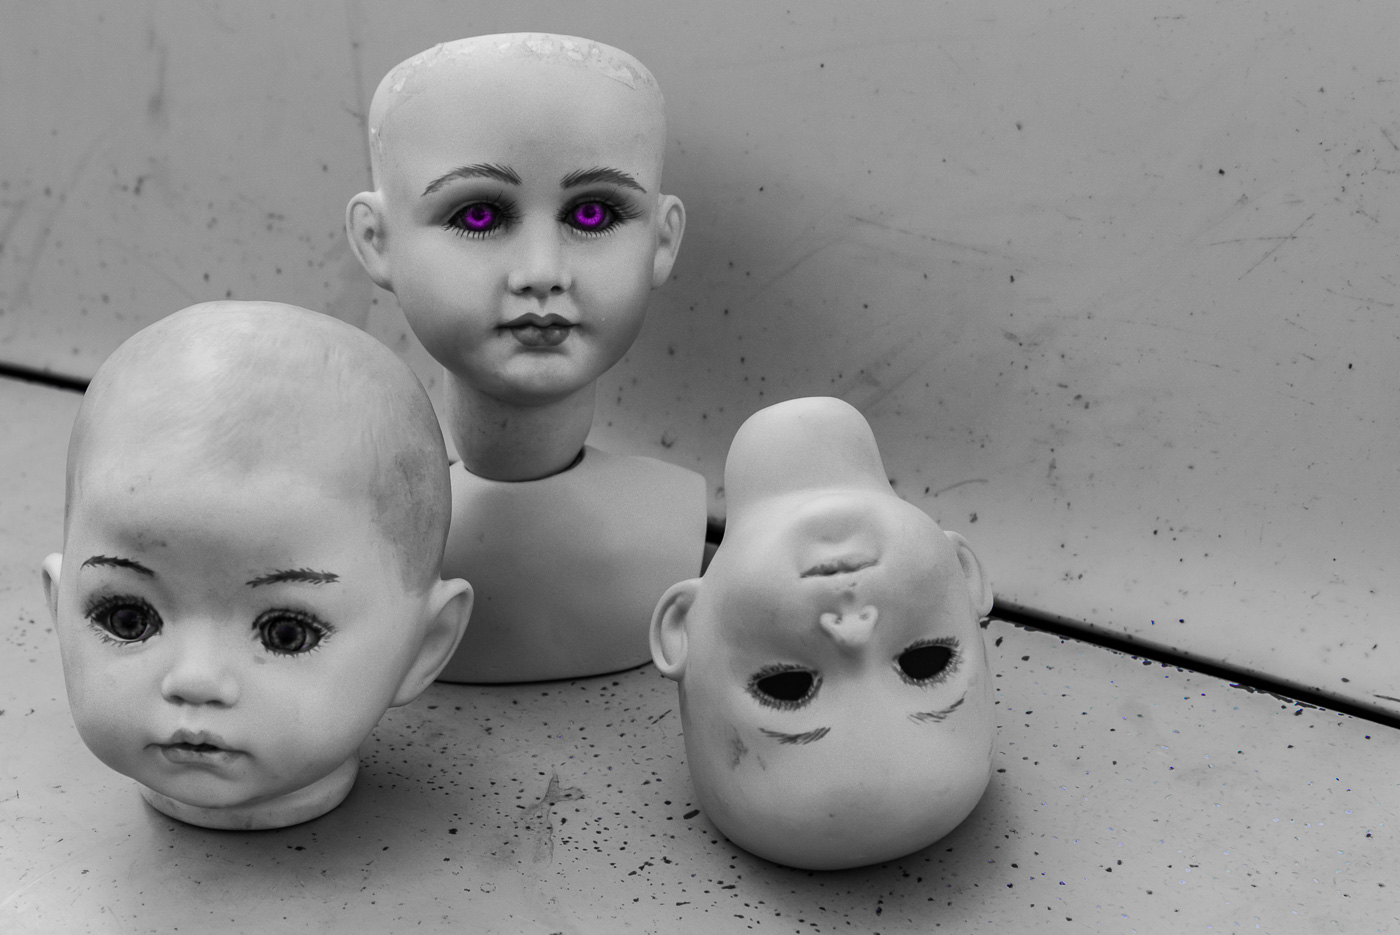 DOLLS by Paul Dubbelman